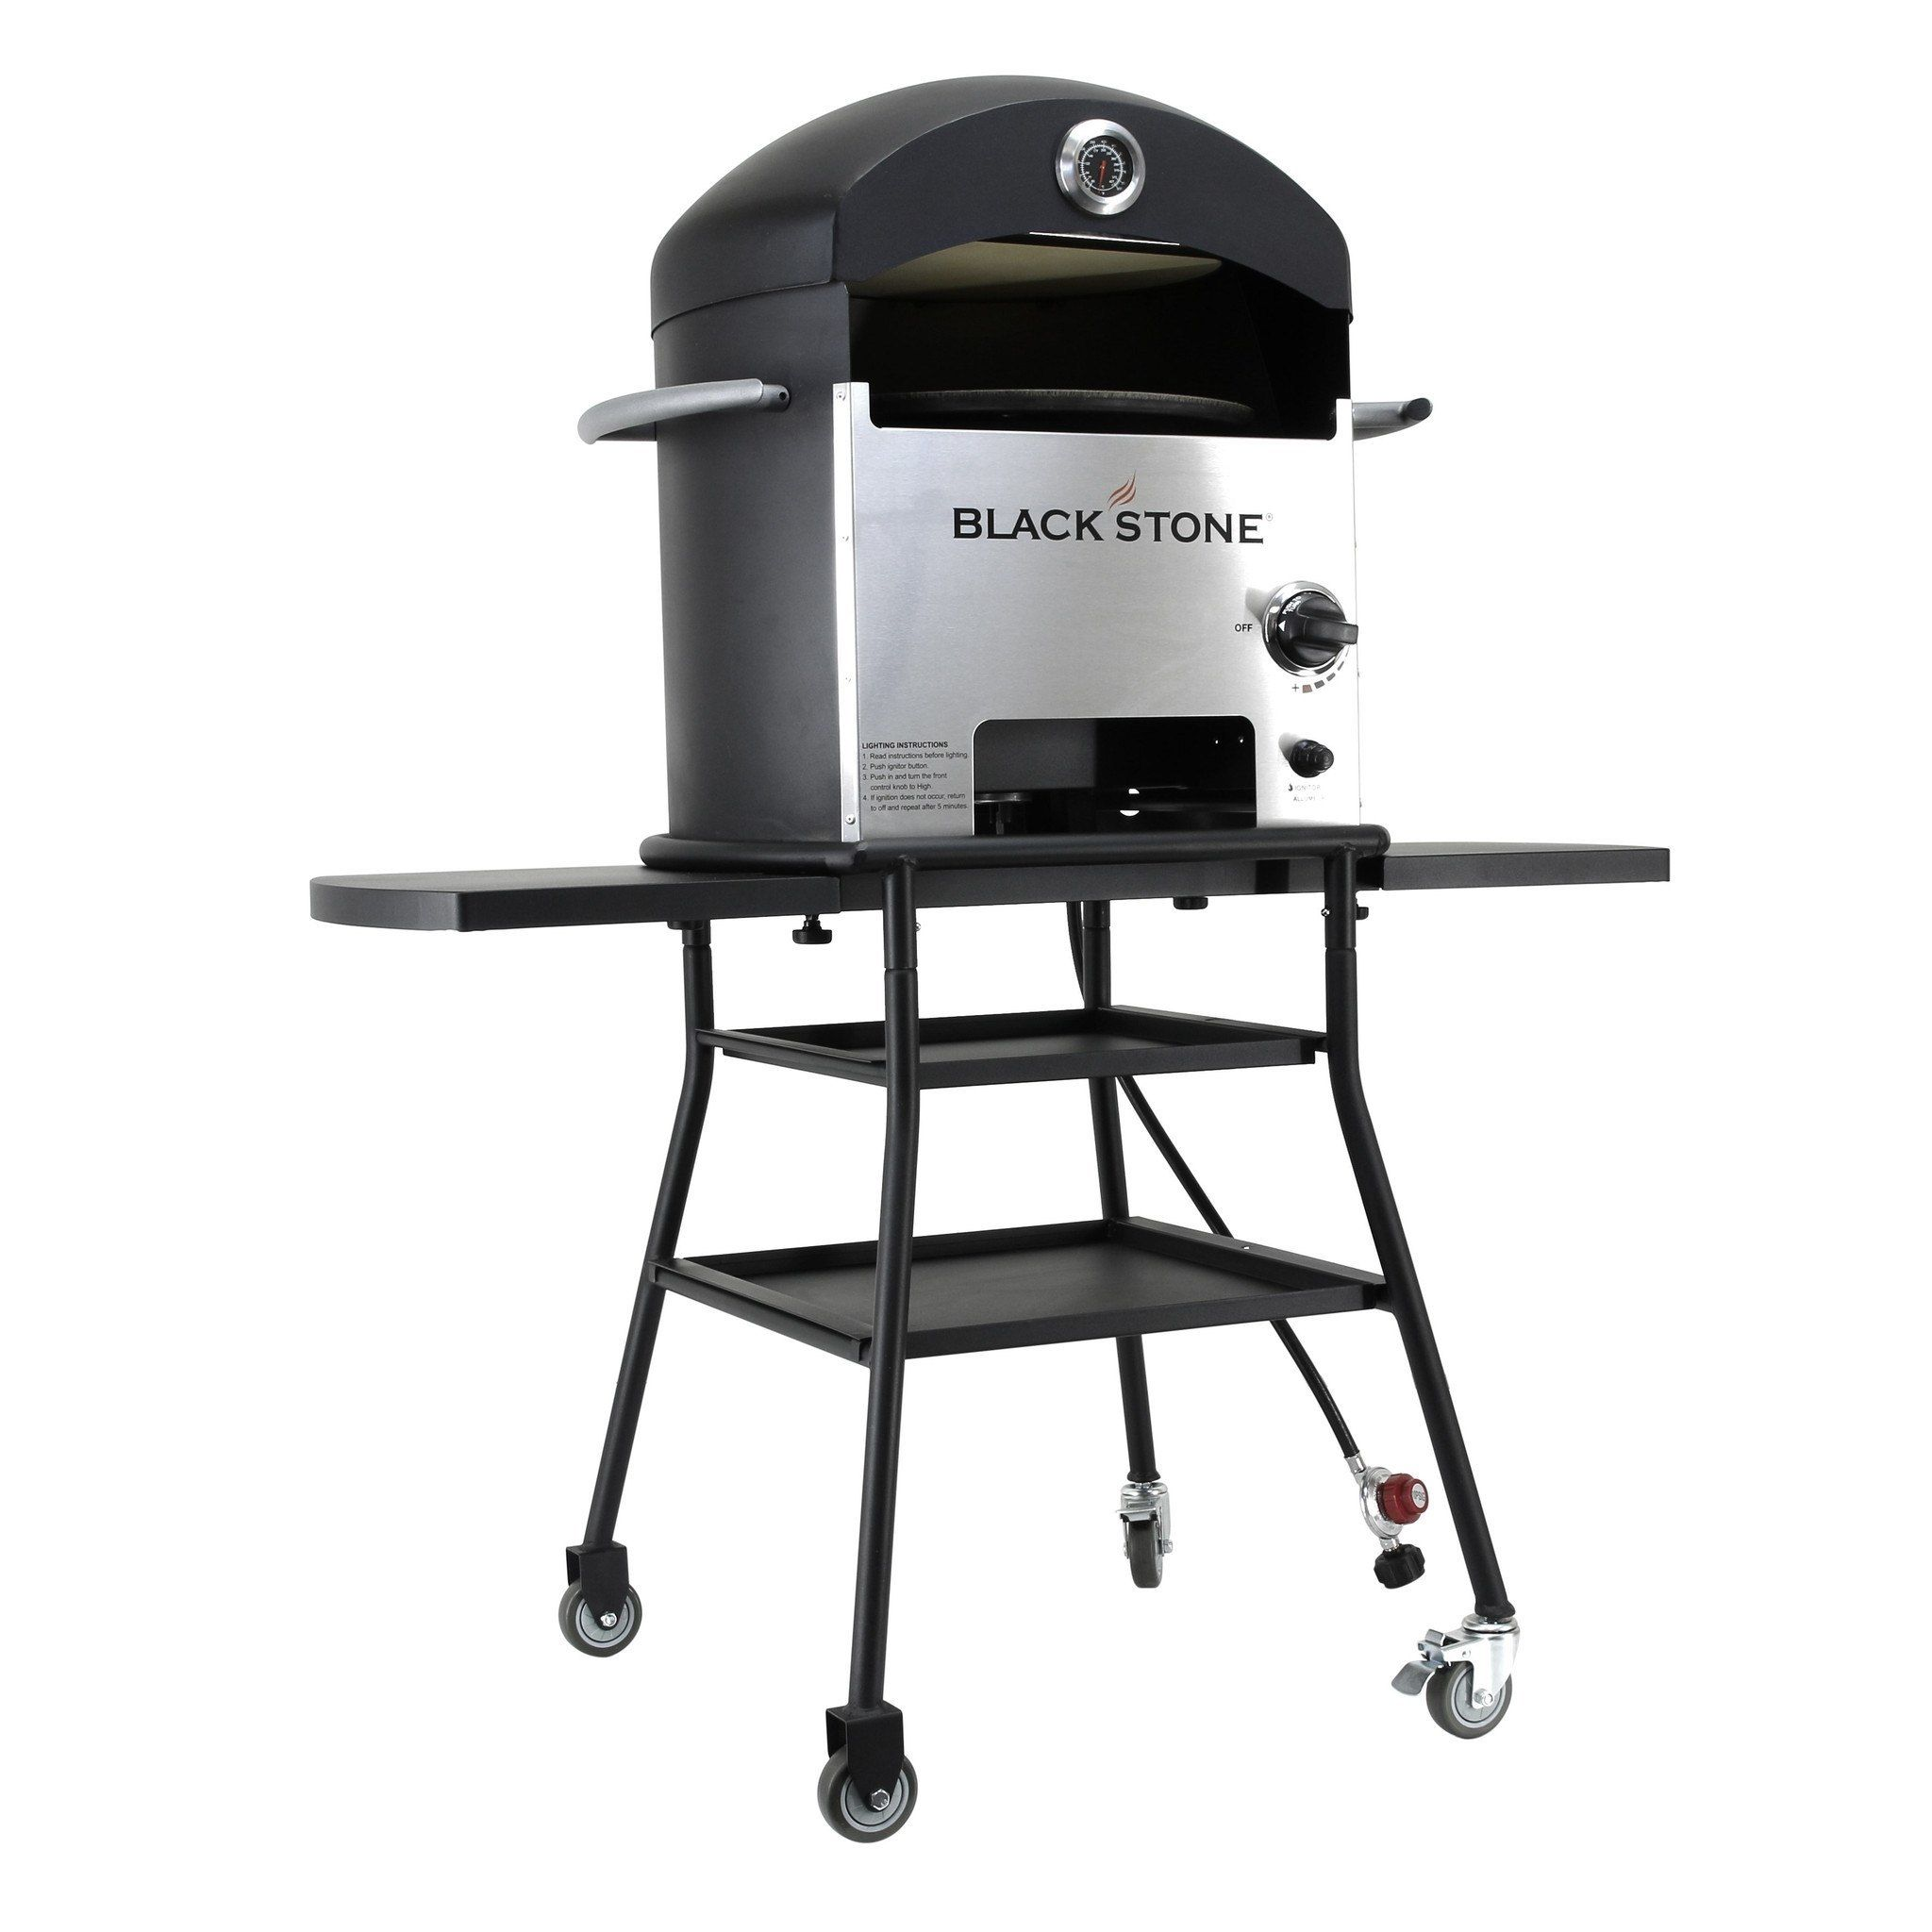 The Blackstone Patio Pizza Oven Is The Best Way To Make Your Own Pizza. The